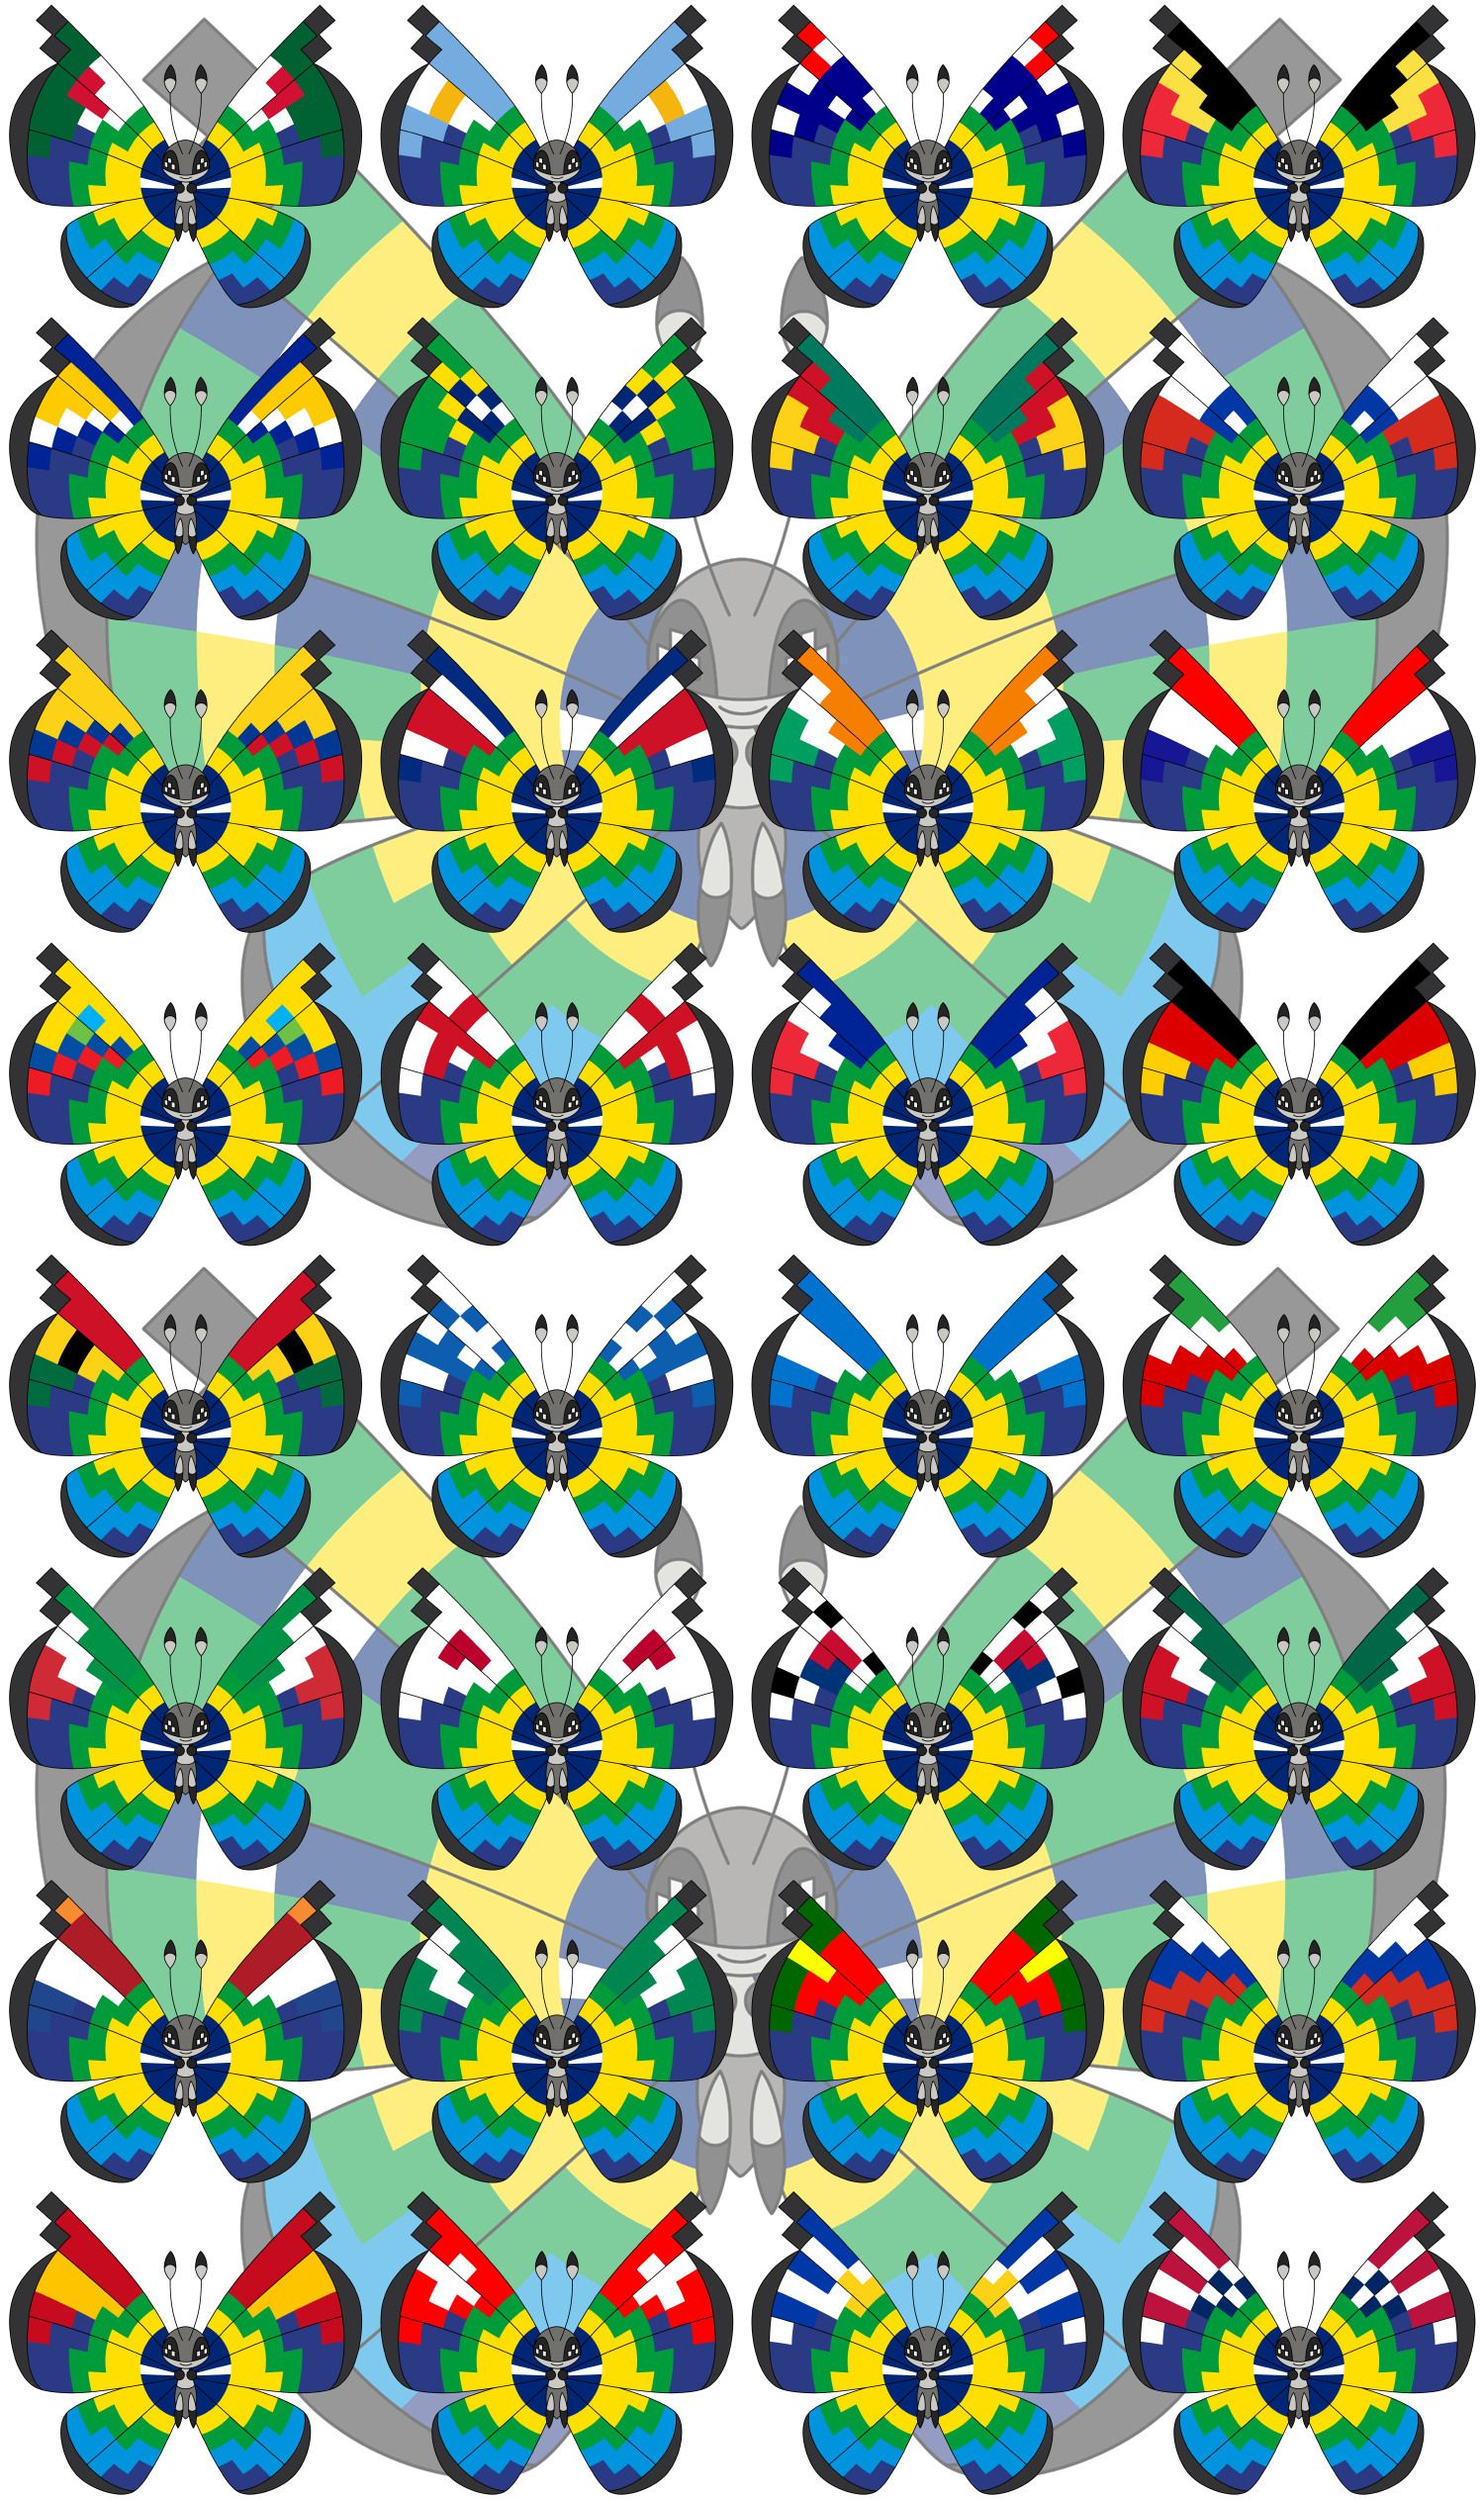 Vivillon - 2014 FIFA World Cup Brazil - Version 2